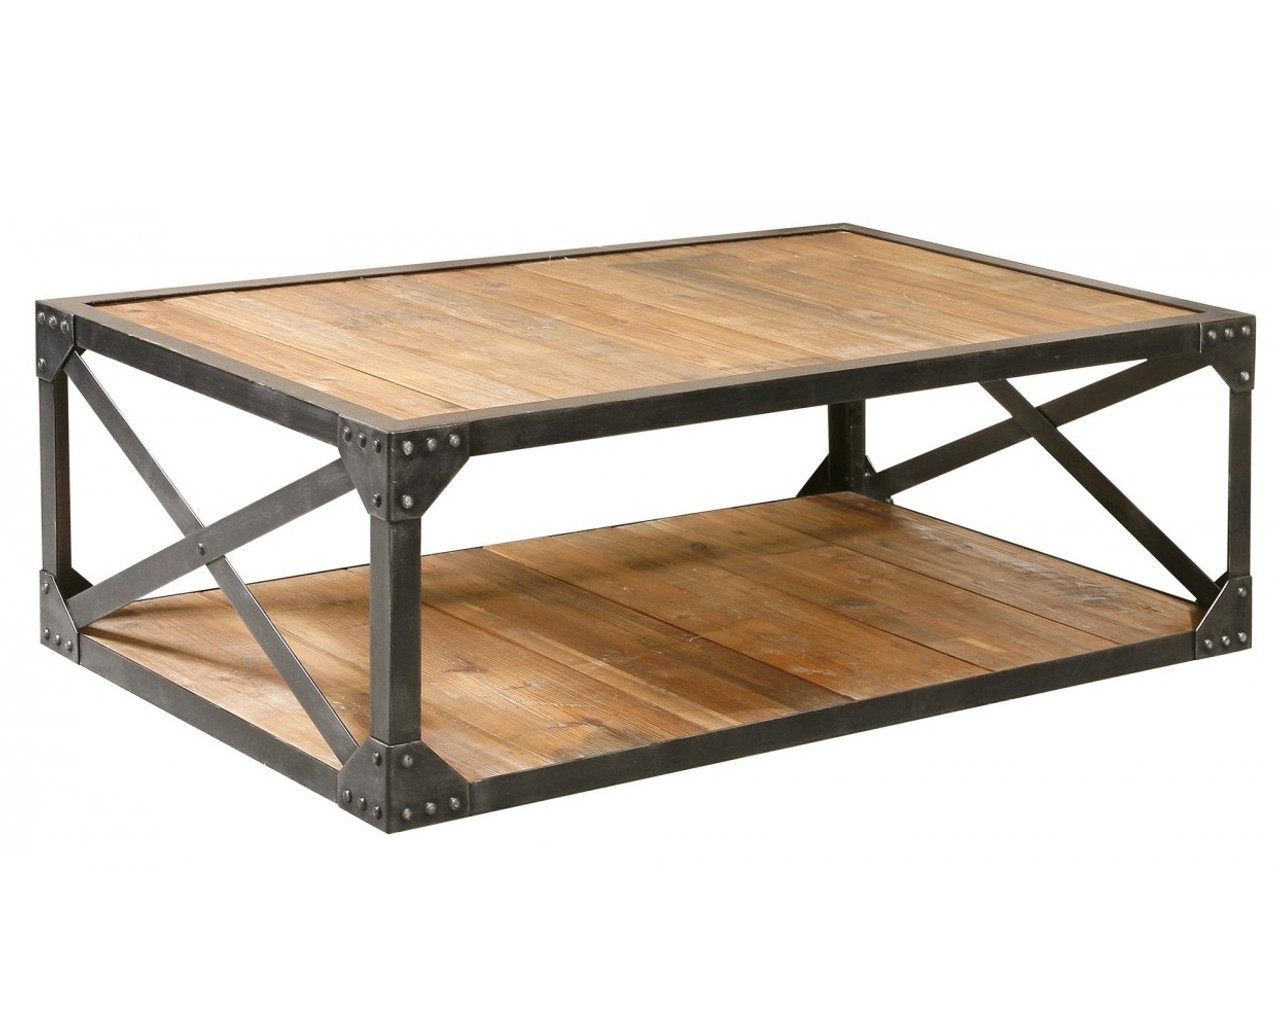 Industrial metal and wood coffee 51 table rectangular cocktail table industrial coffee Bench coffee tables